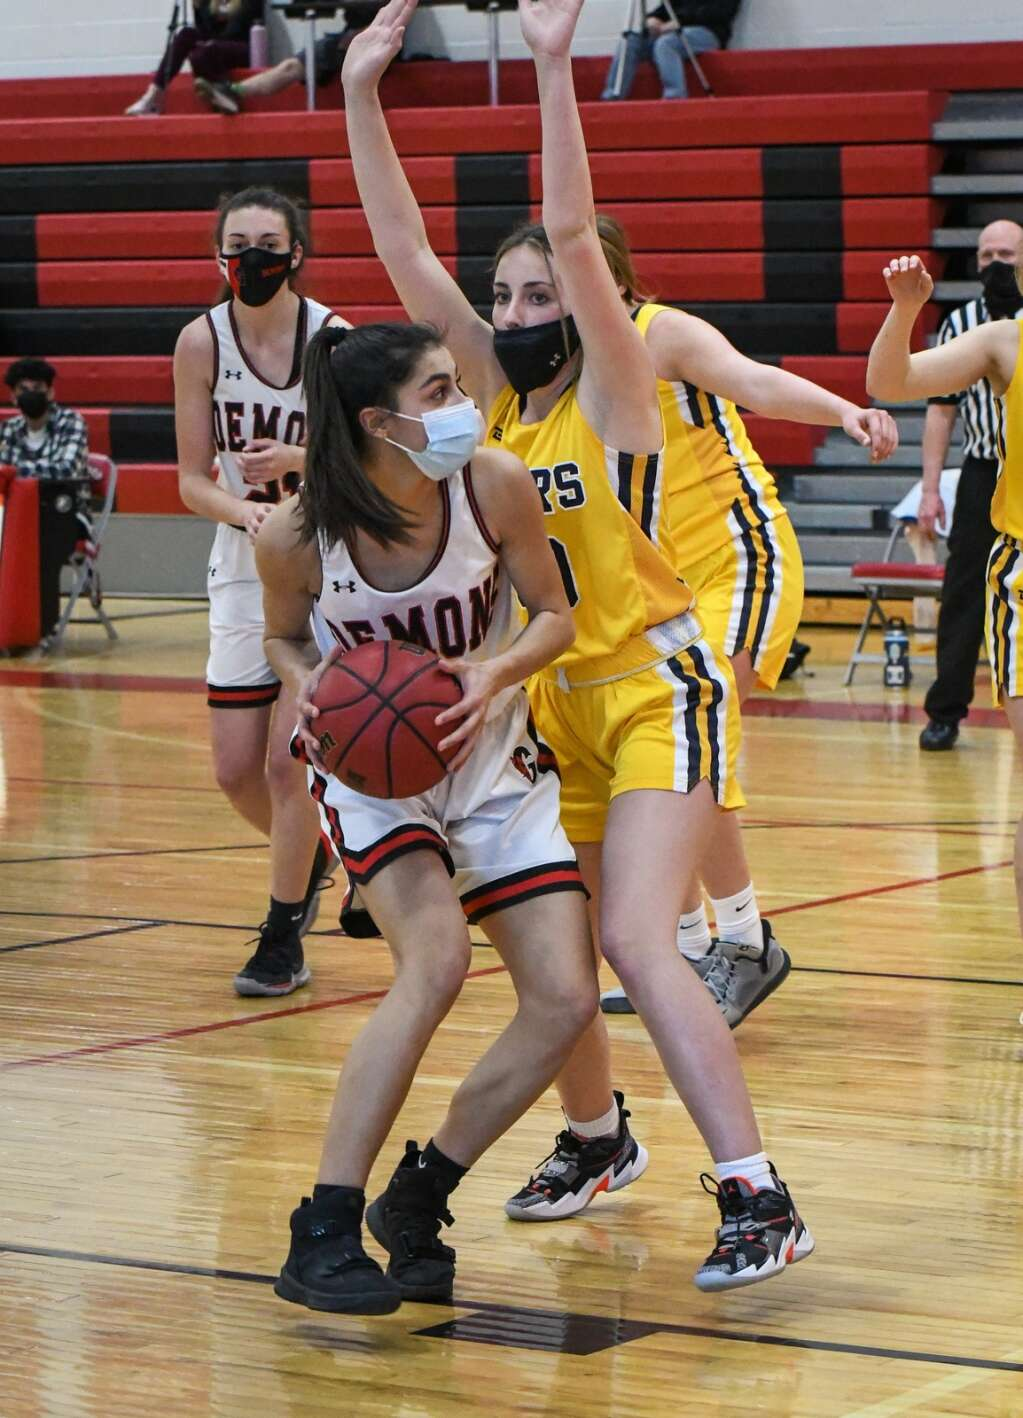 Glenwood Springs Demon Miah Suarez looks for an open teammate during Tuesday night's rivalry game against the Rifle Bears. |Chelsea Self / Post Independent